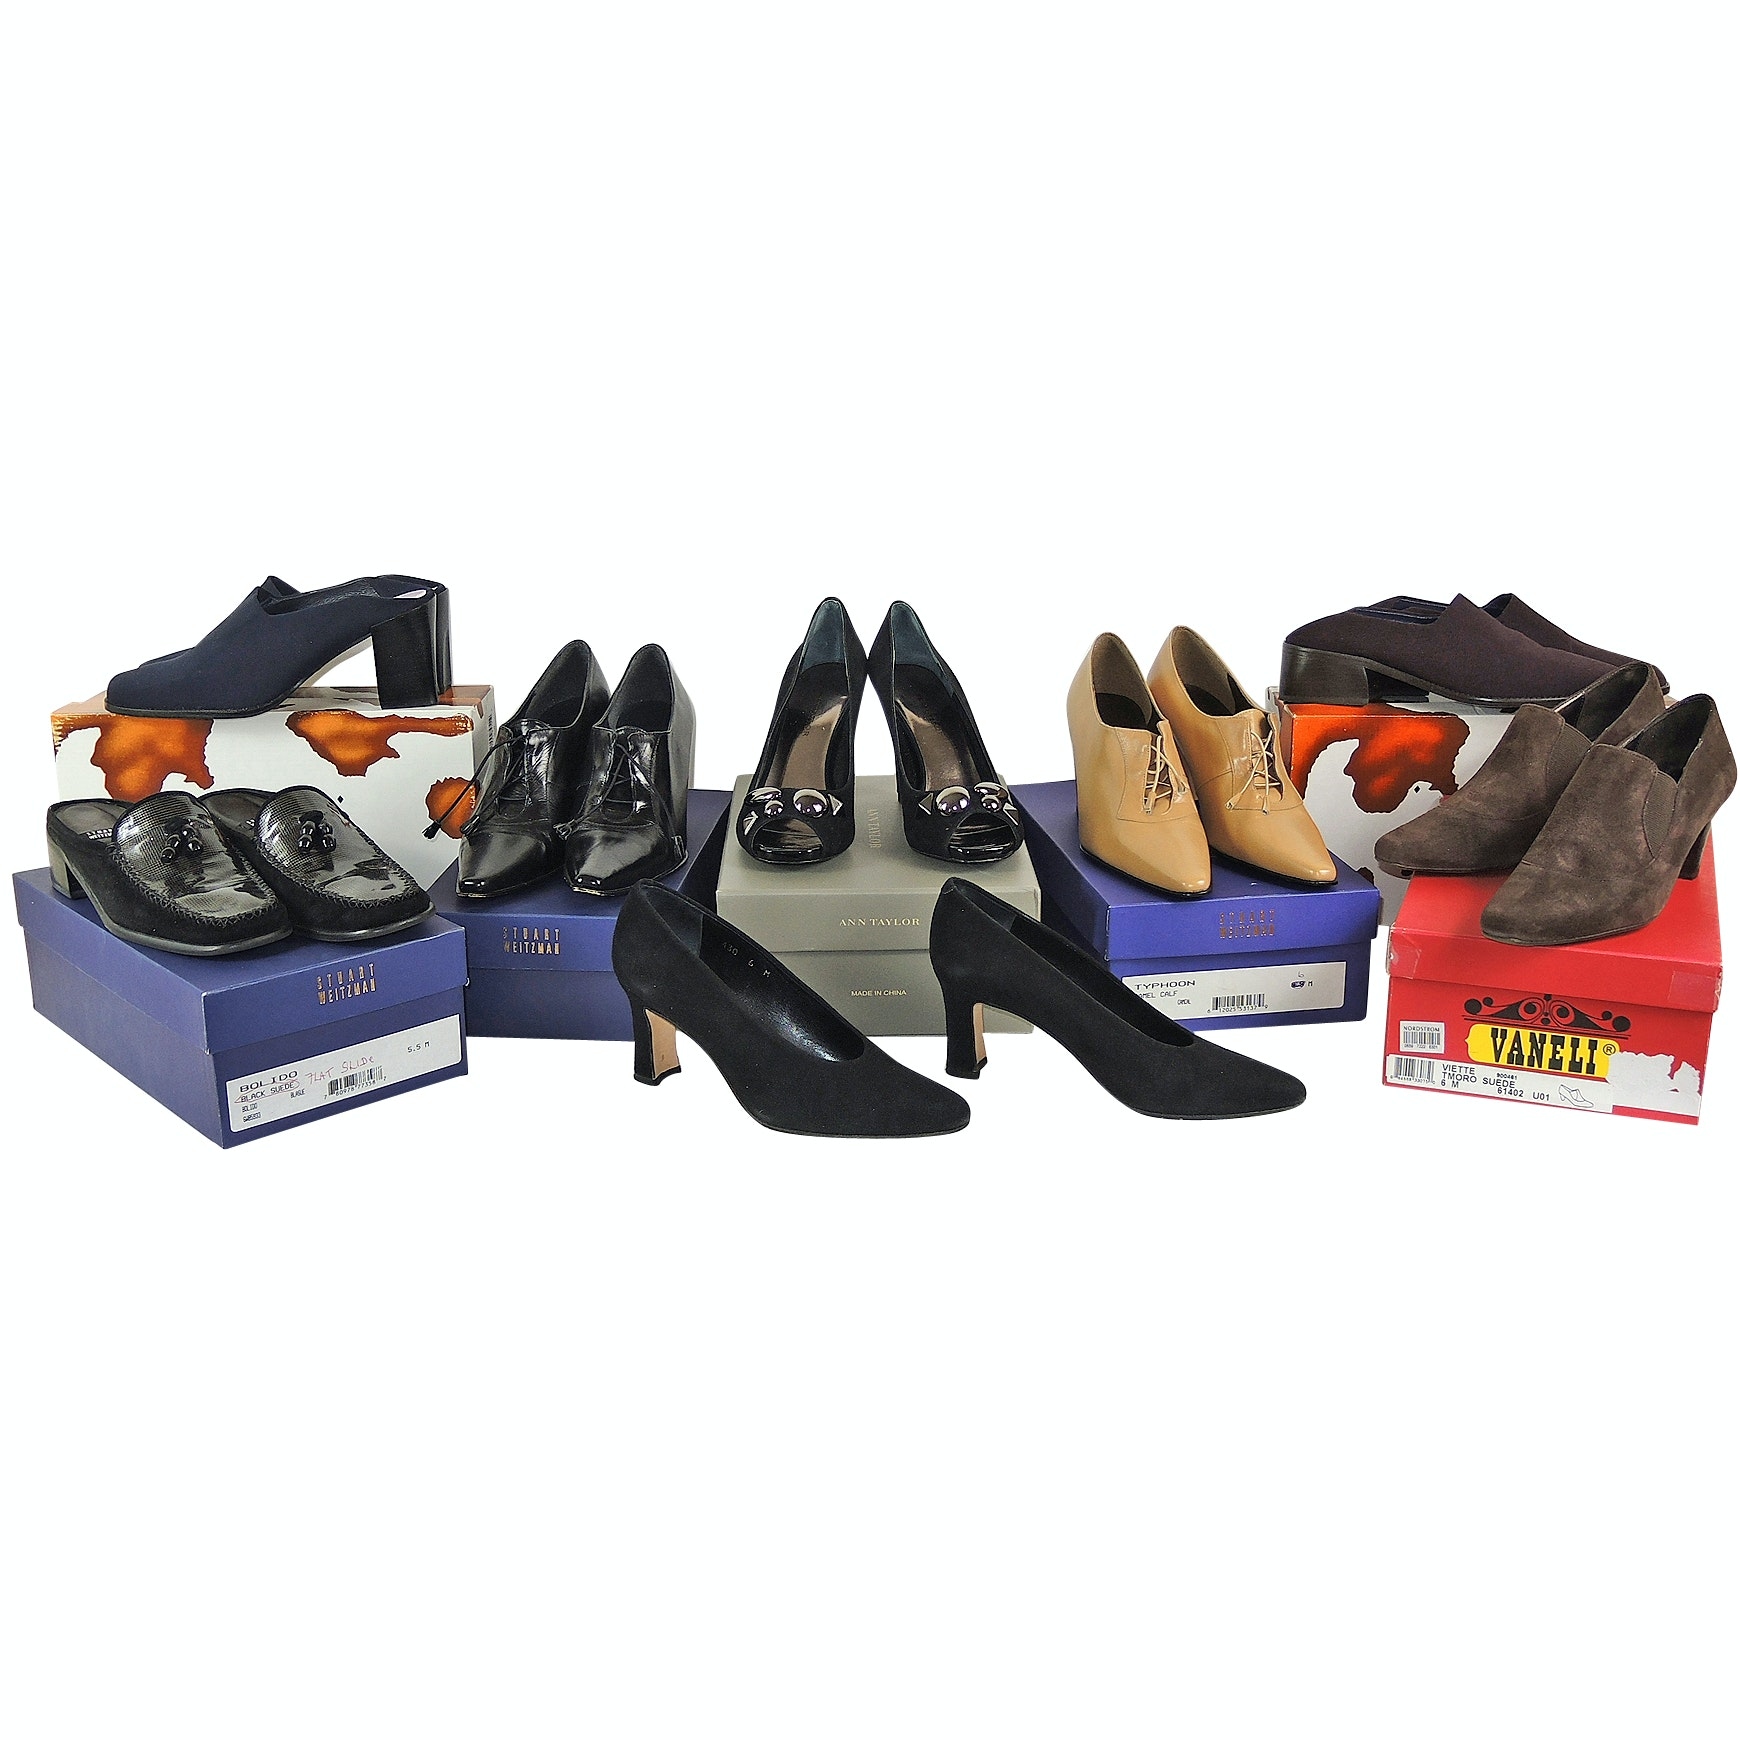 Collection of Women's Heels, Pumps and Slip-On Shoes Including Donald J Pliner